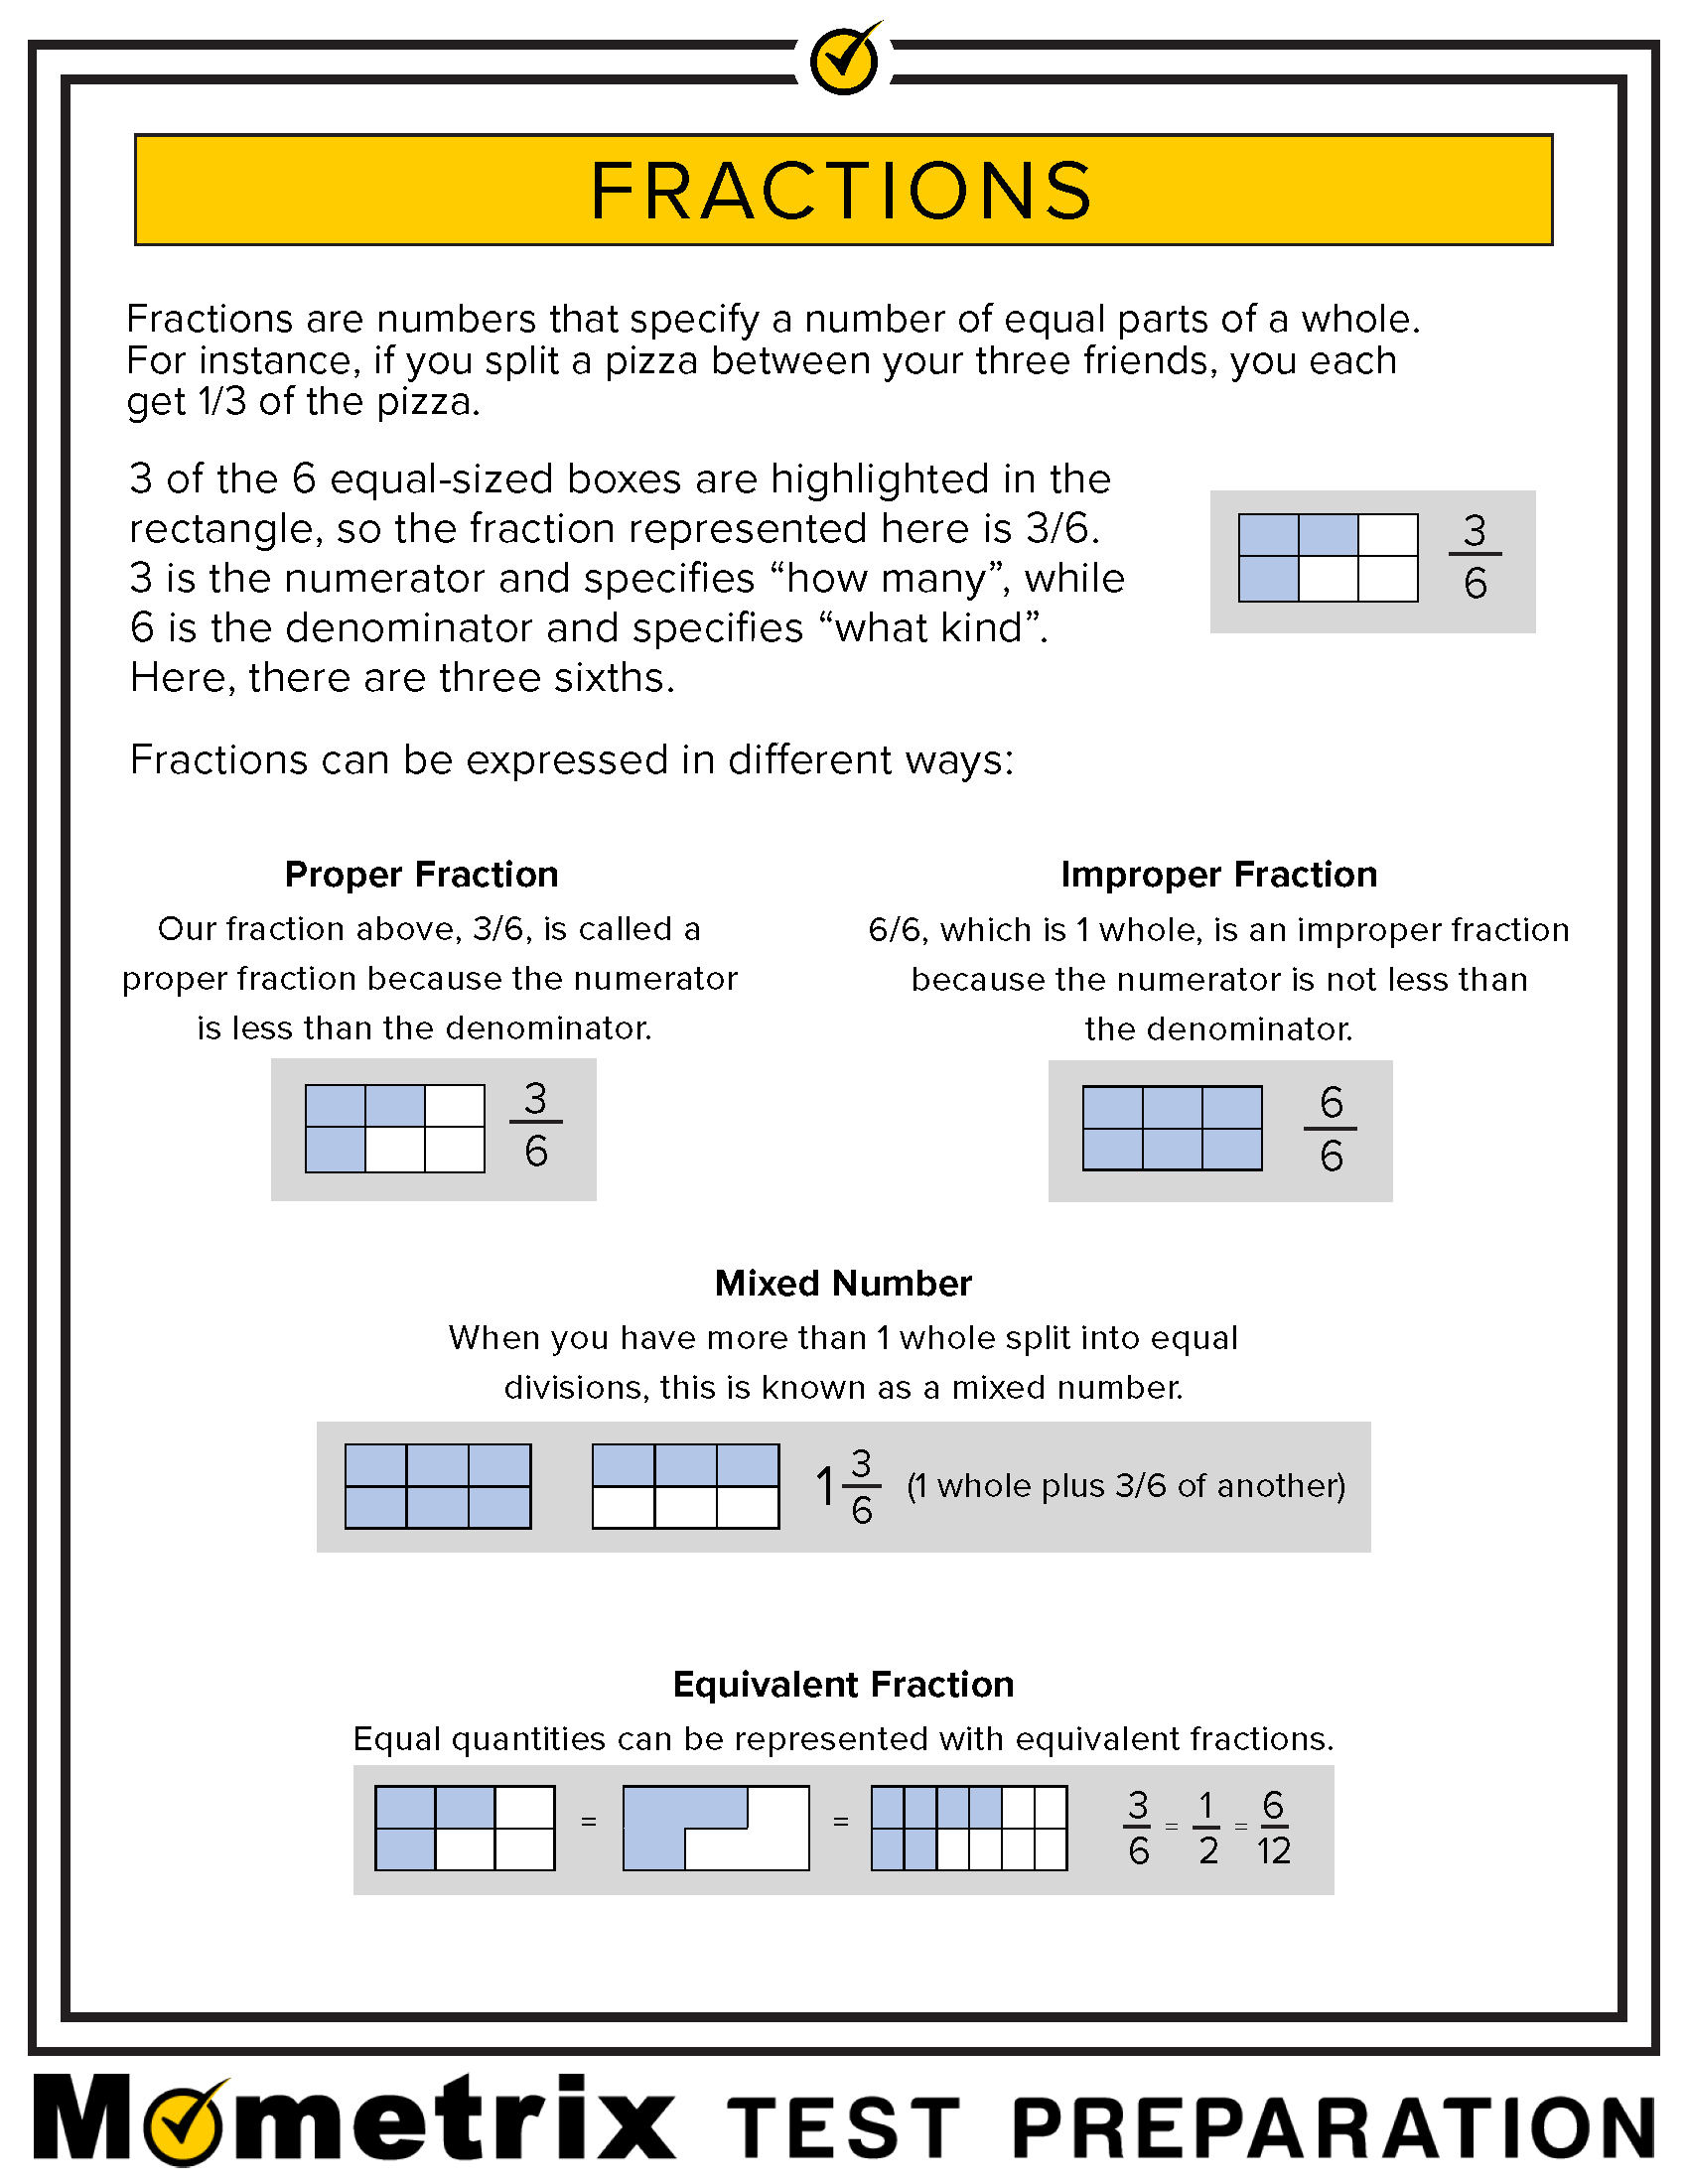 Infographic explaining and giving examples of fractions